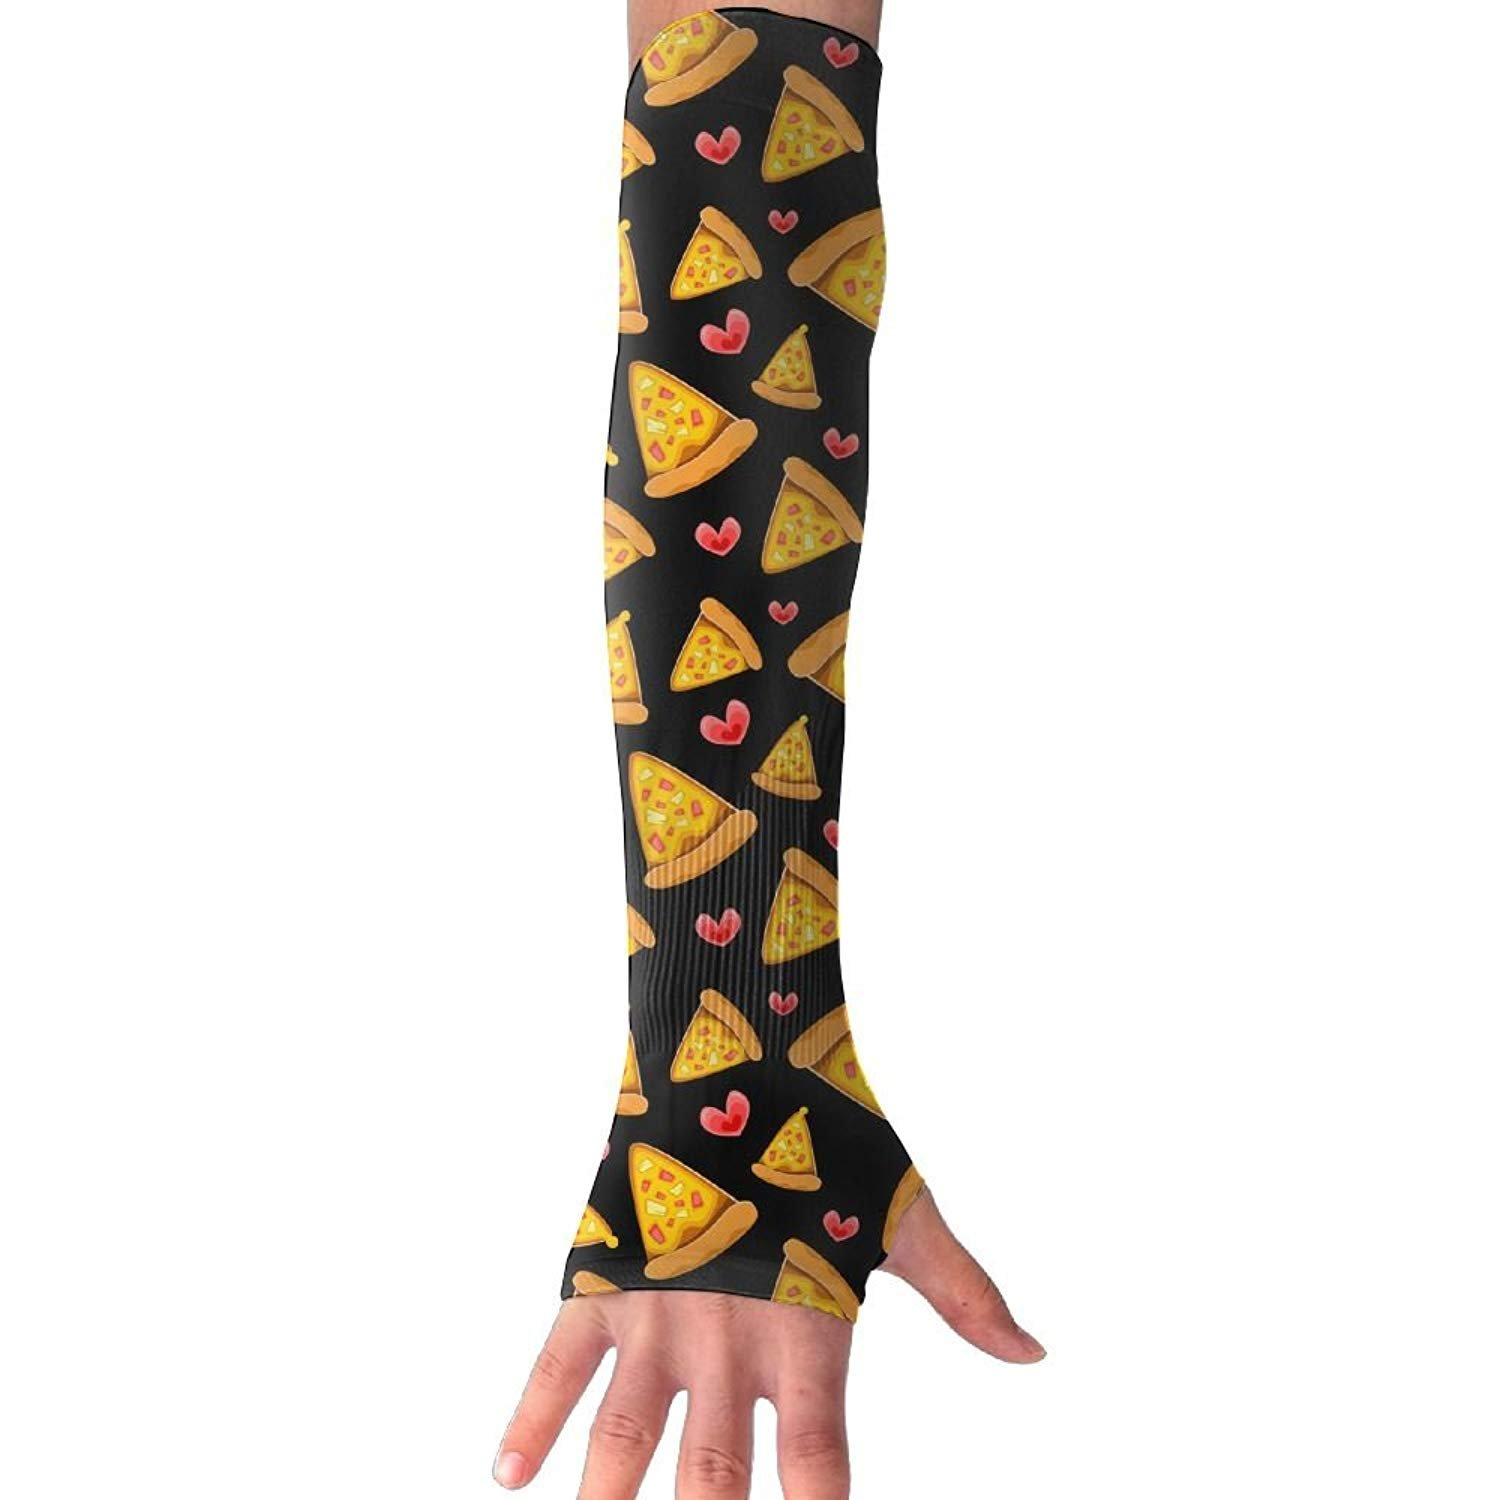 Unisex Cute Pizza Heart Sunscreen Outdoor Travel Arm Warmer Long Sleeves Glove